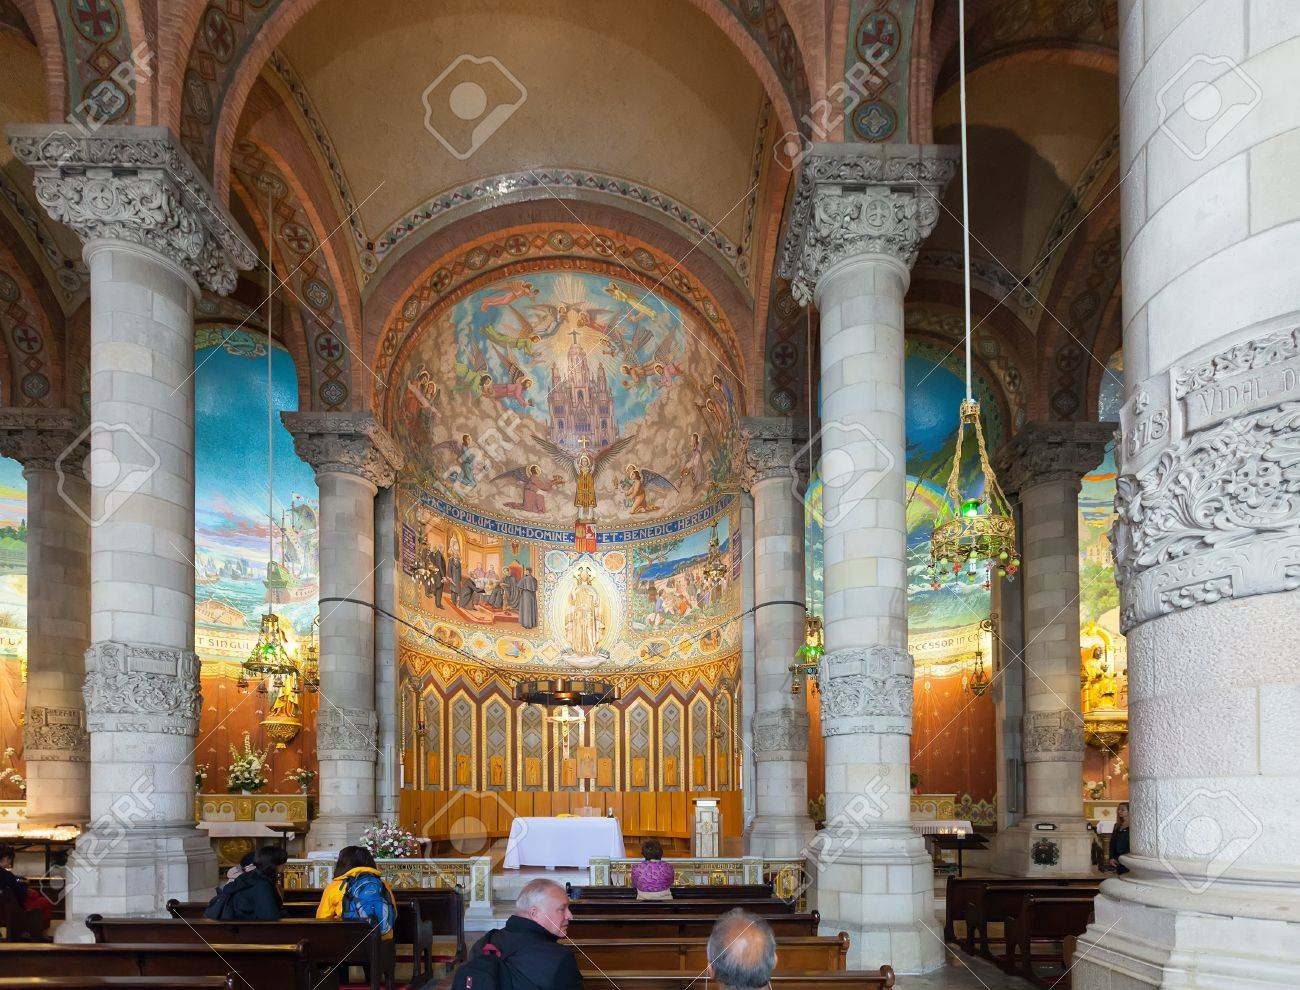 BARCELONA, SPAIN - MAY 18  Interior of Church of the Sacred Heart of Jesus in May 18, 2013 in Barcelona, Spain  Сonstruction of temple dedicated to the Sacred Heart, lasted from 1902 to 1961 Stock Photo - 21242649